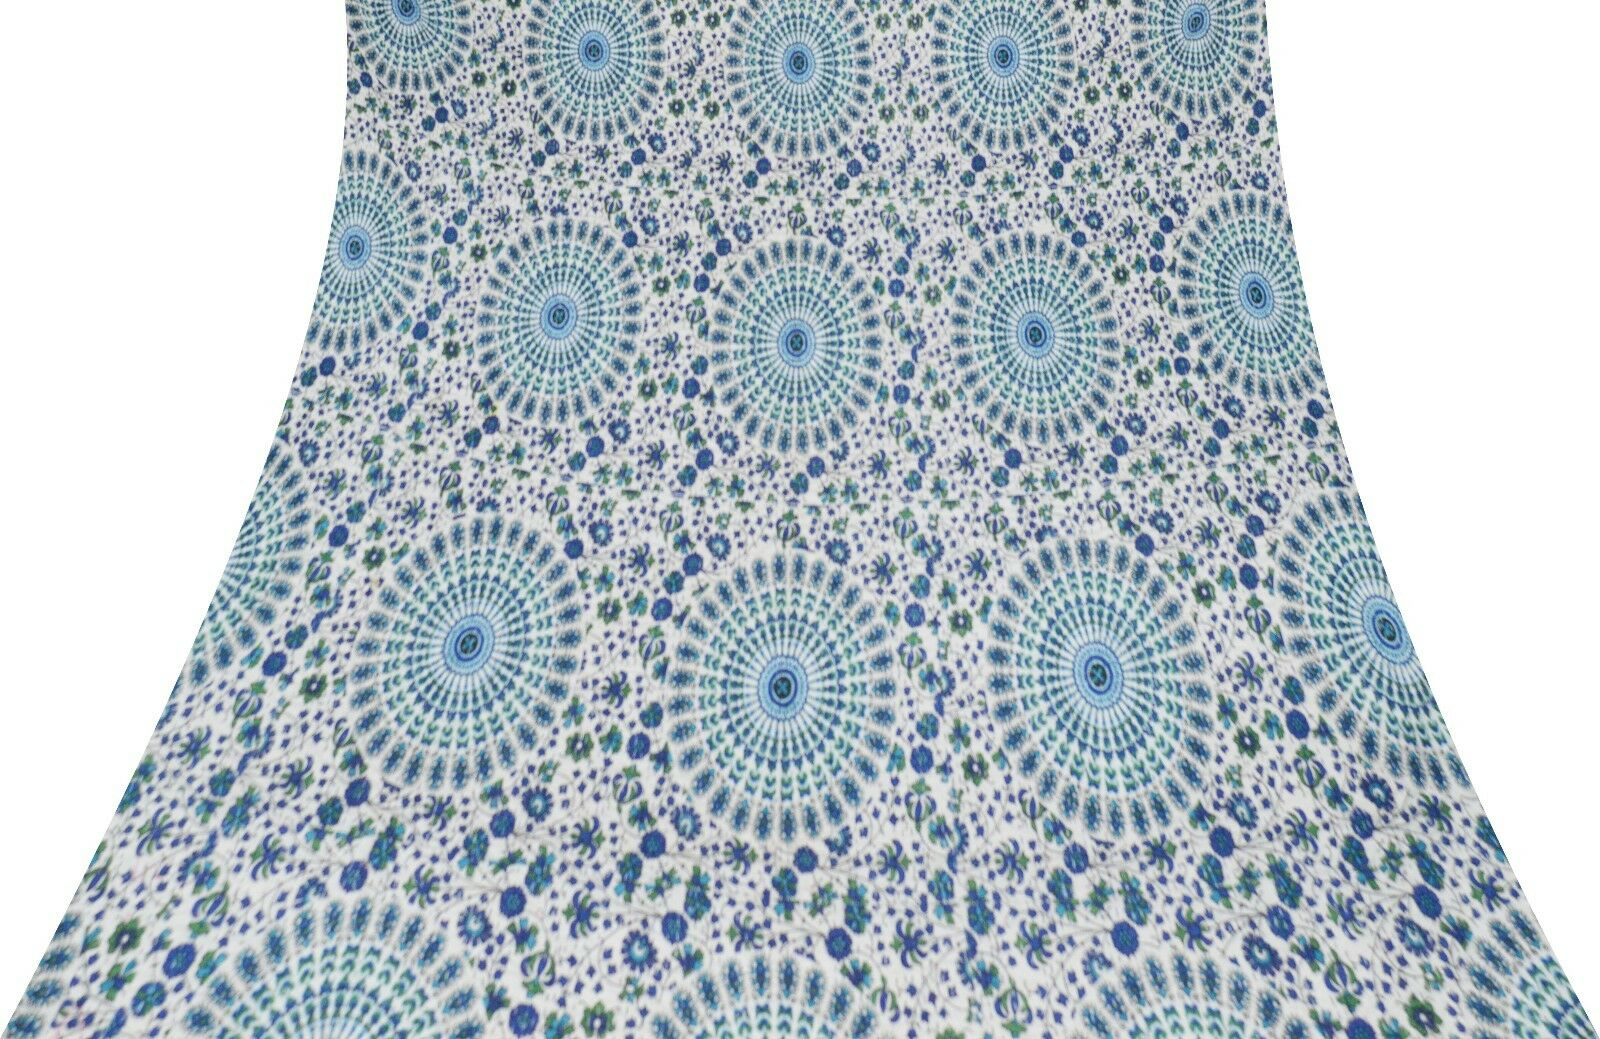 Peacock Mandala Tapestry Kantha Quilt Ombre Bedspread Queen Size Bedding Blanket